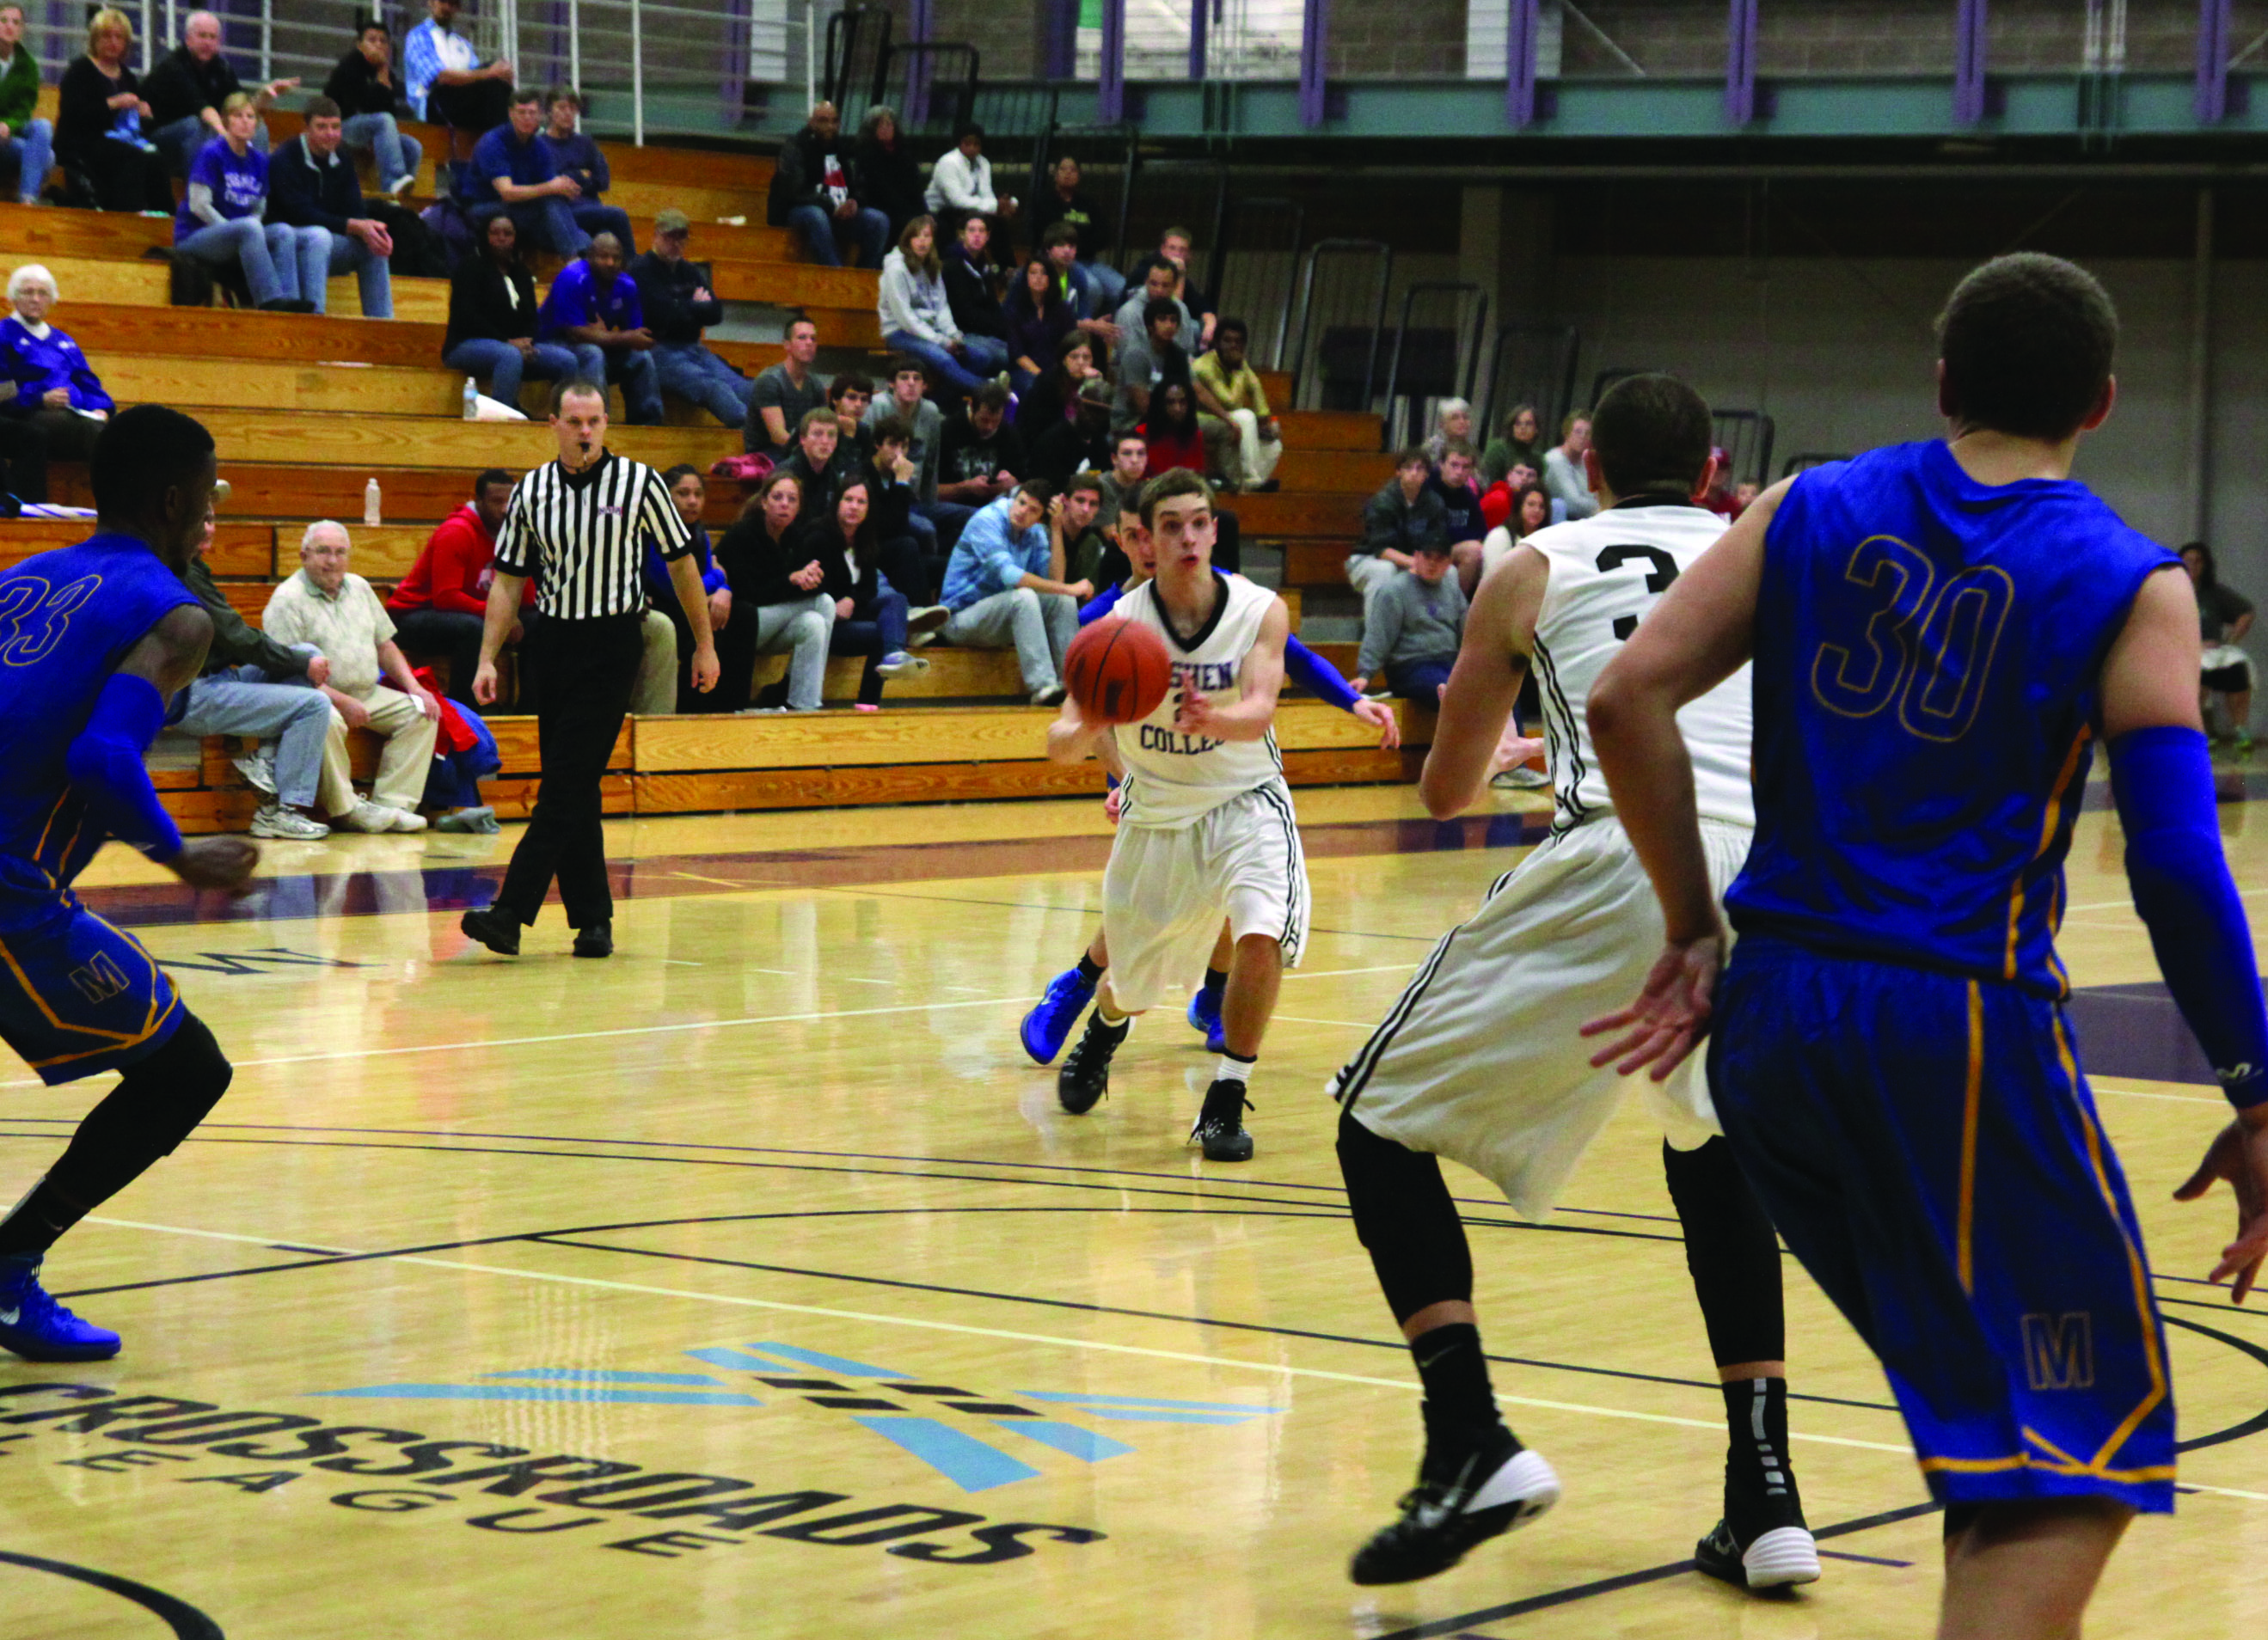 A player on the Goshen men's basketball team prepares to throw the ball in a game. Another Goshen player and two opposing players are in the foreground of the shot, while spectators can be seen on bleachers in the background